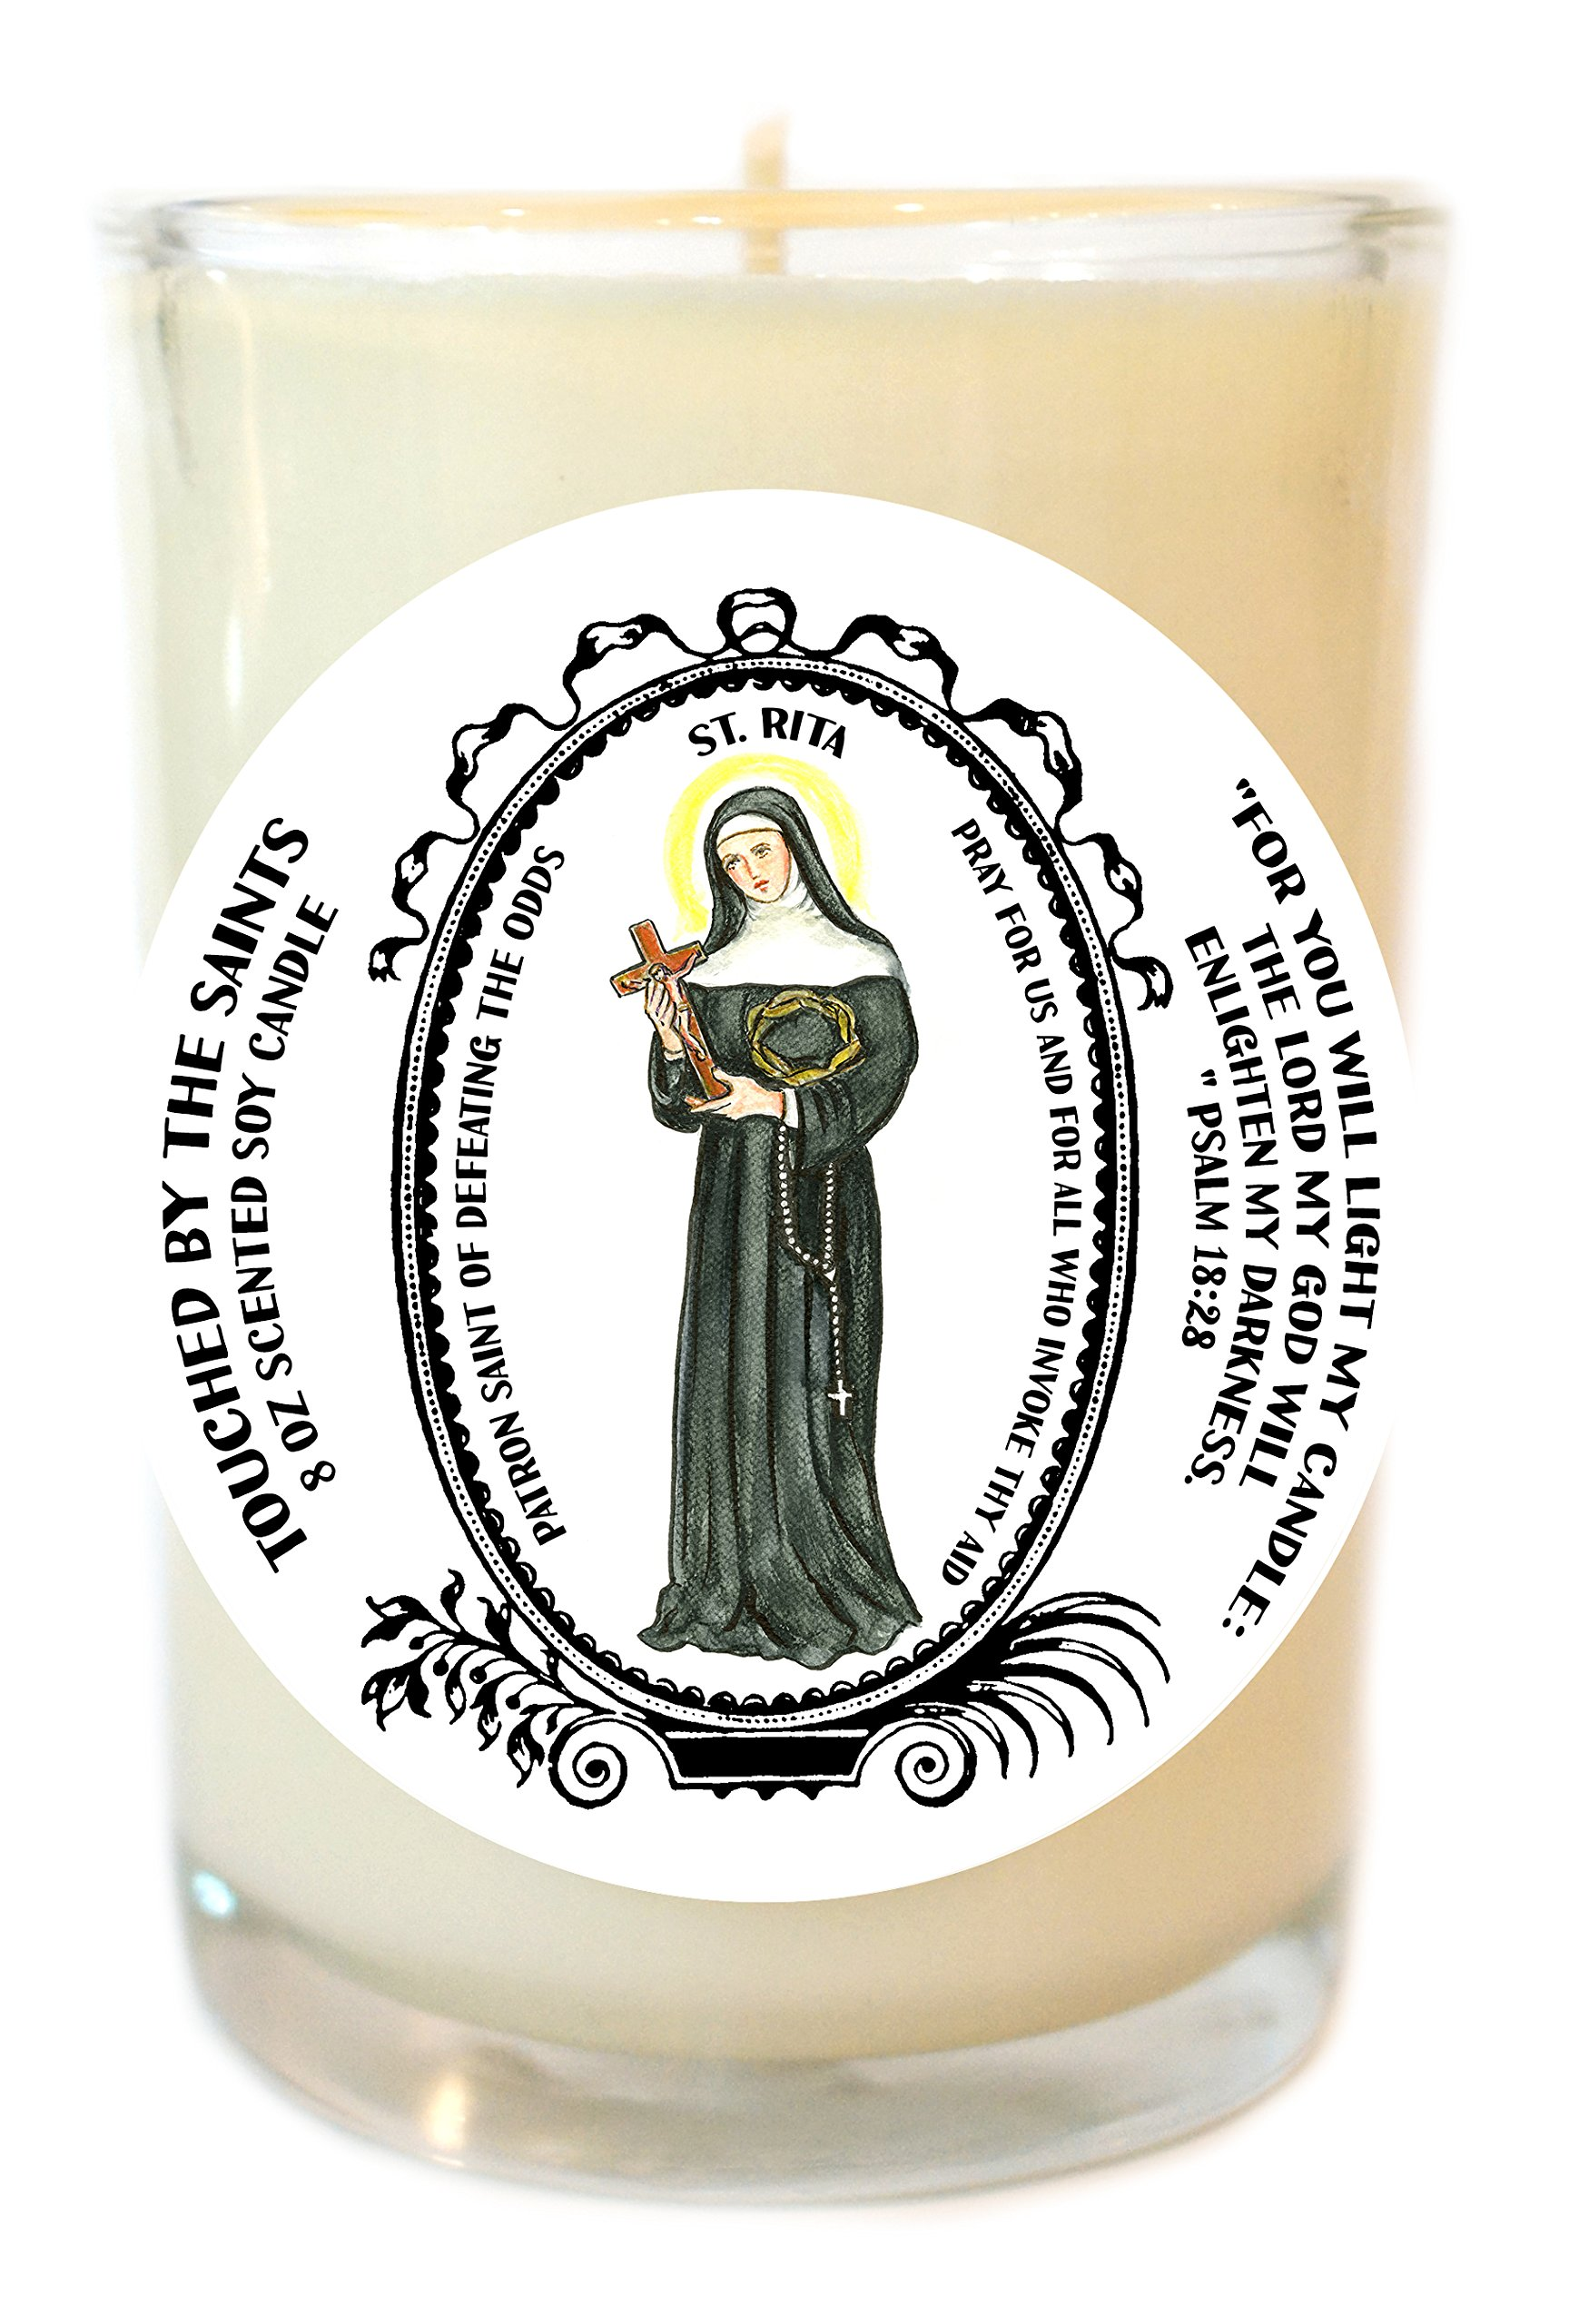 Saint Rita for Defeating the Odds 8 Oz Scented Soy Glass Prayer Candle